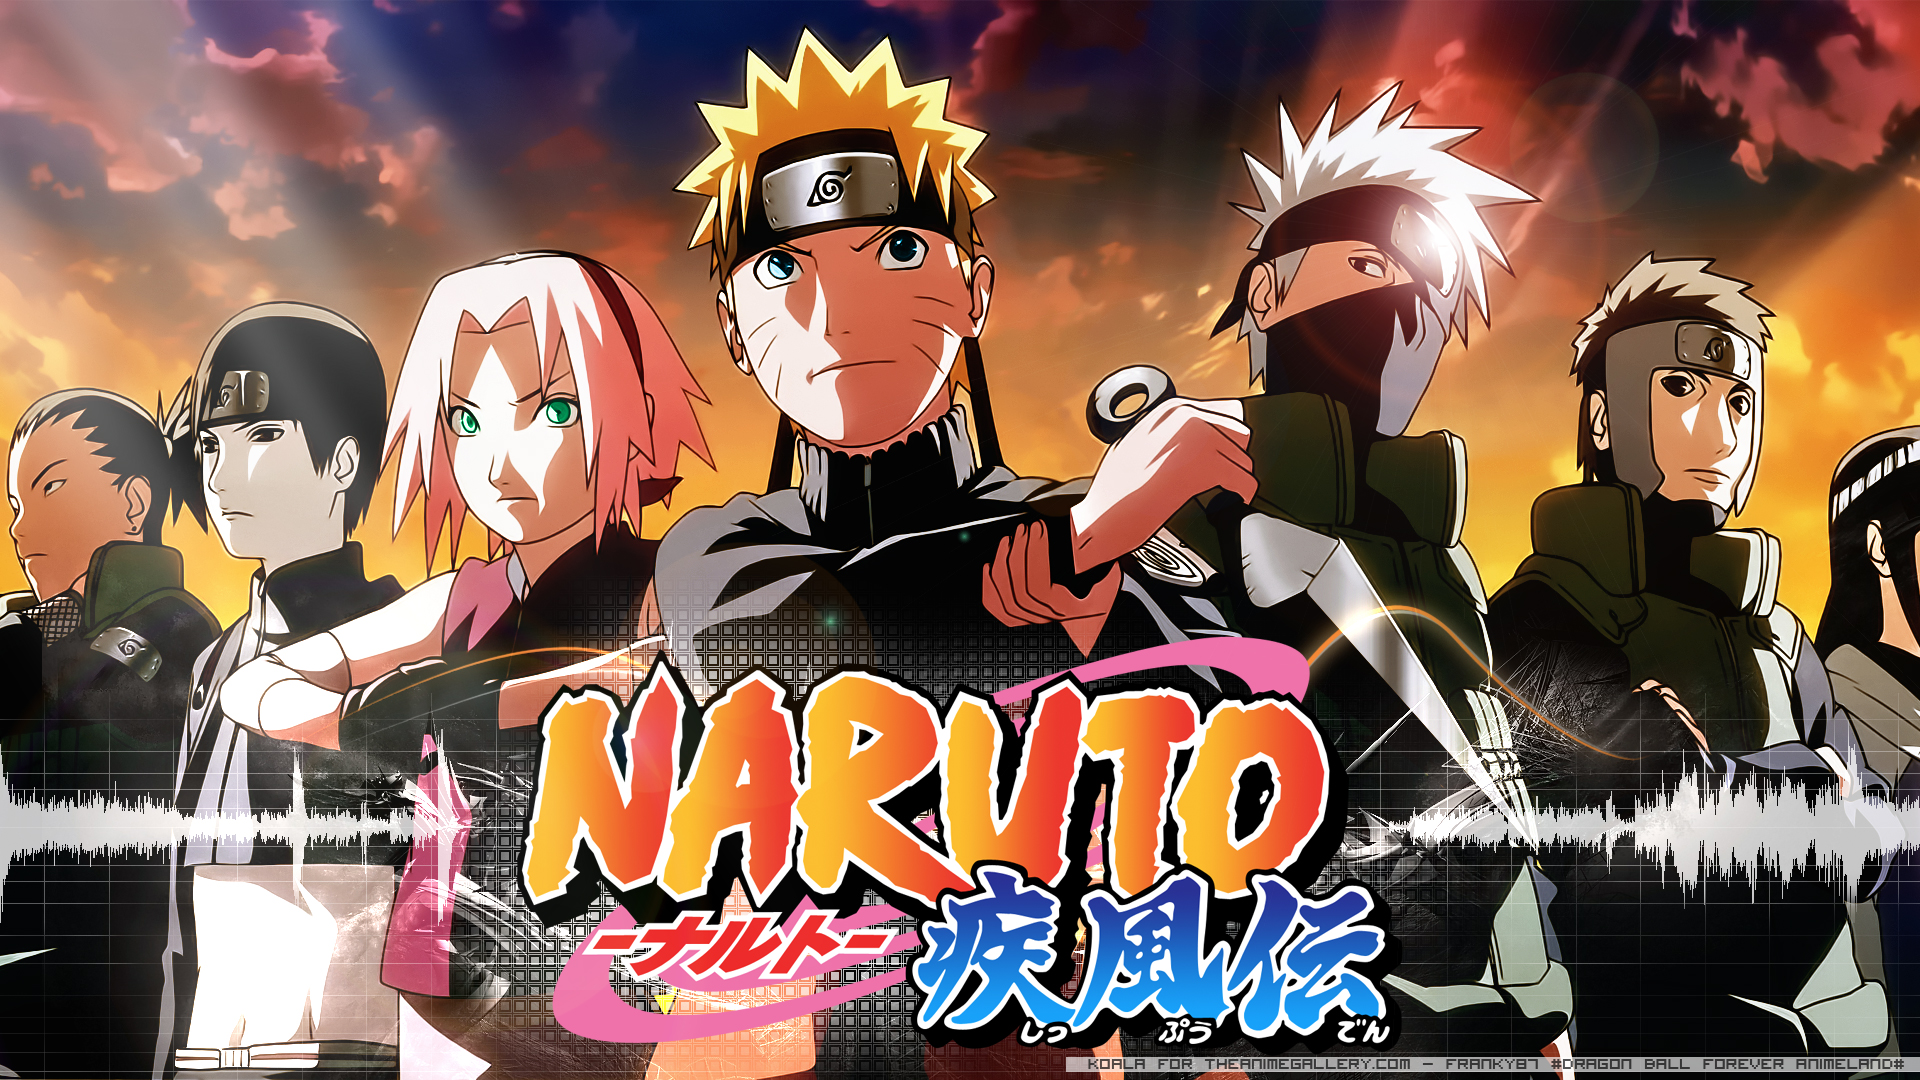 Naruto images naruto anime HD wallpaper and background photos 1920x1080